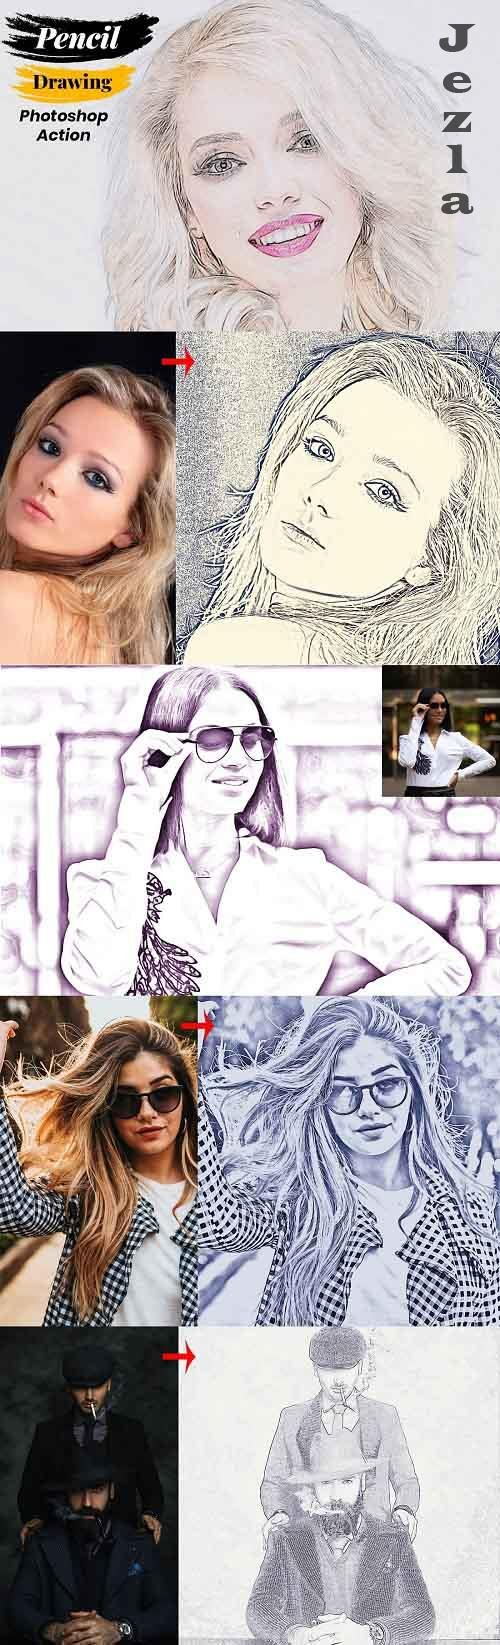 Pencil Drawing Photoshop Action 4888259